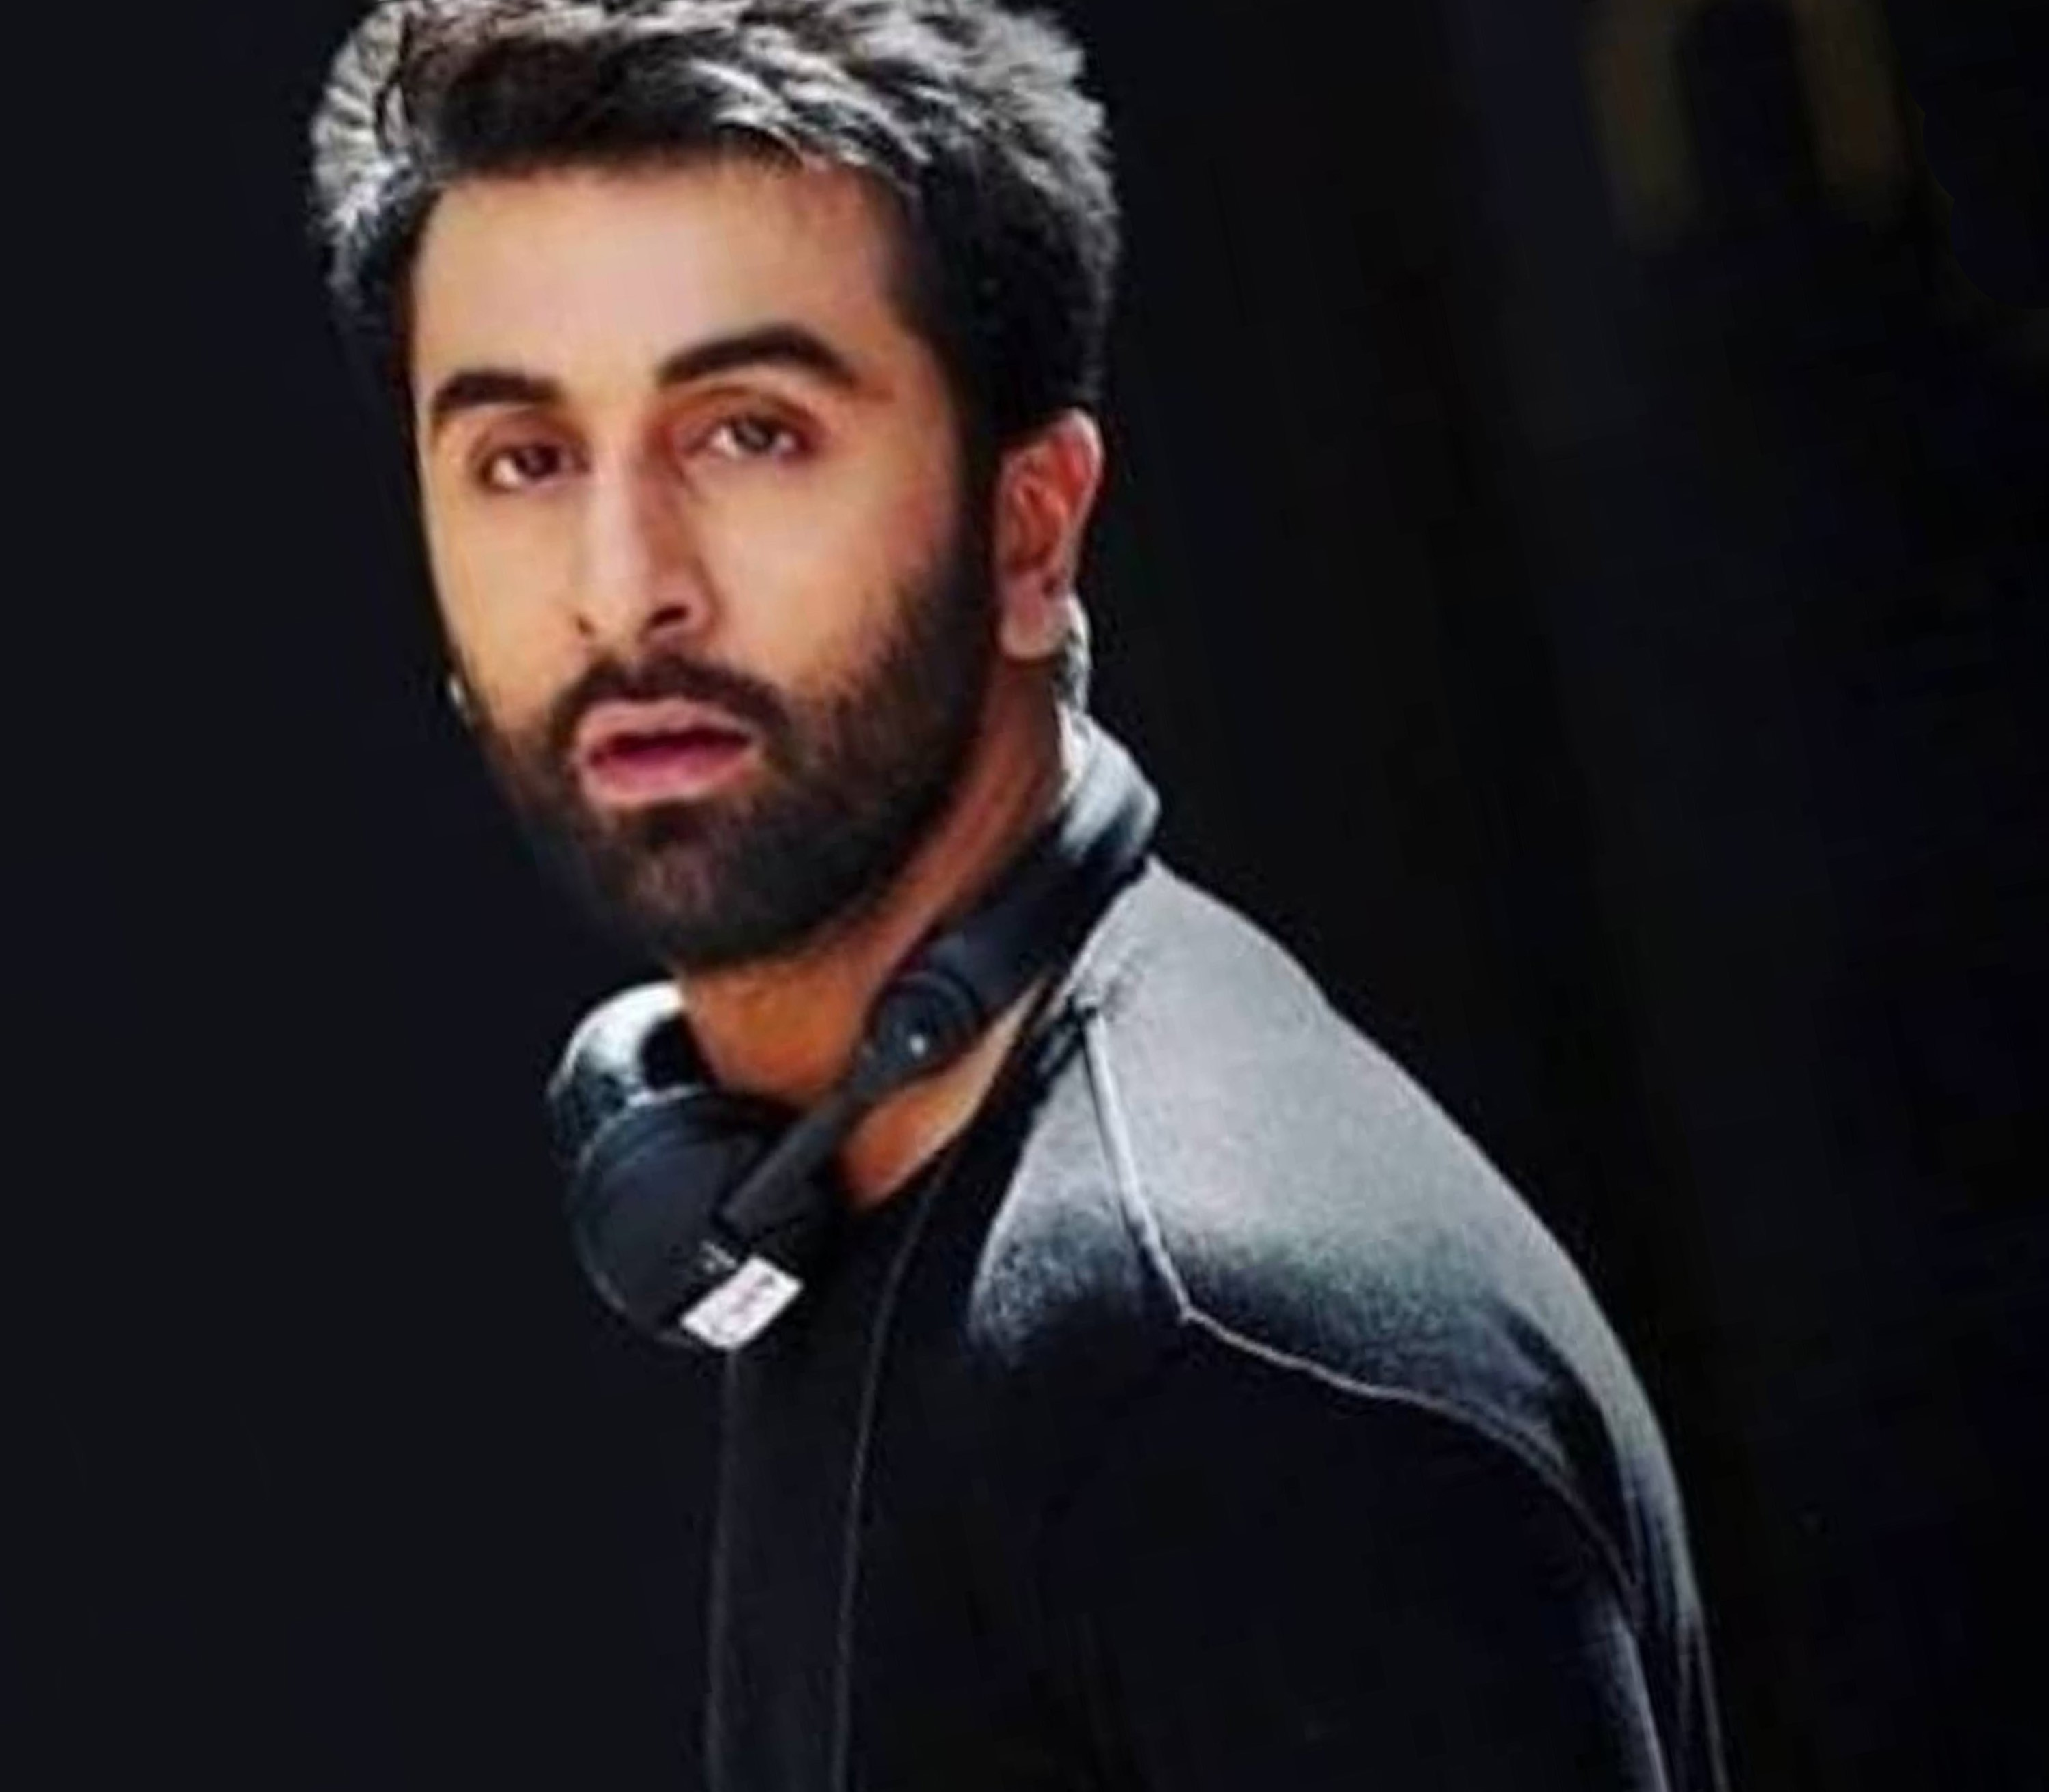 A great full beard of Ranbir Kapoor.